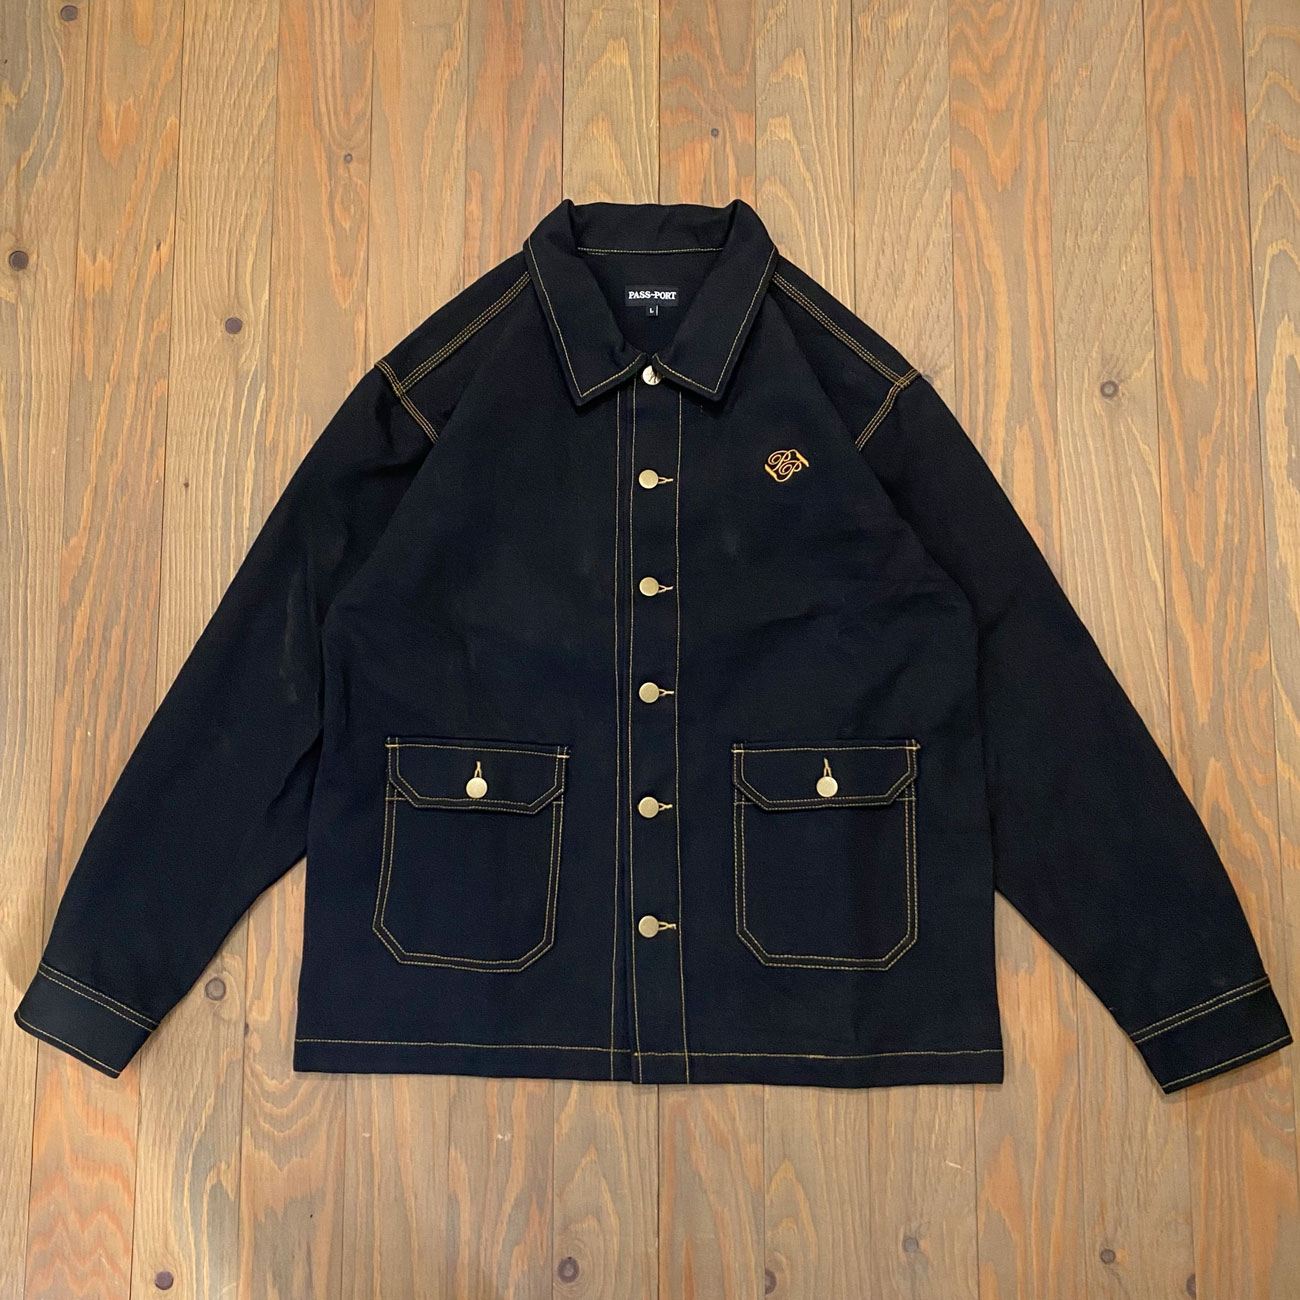 PASS~PORT MASTERS JACKET BLACK/GOLD